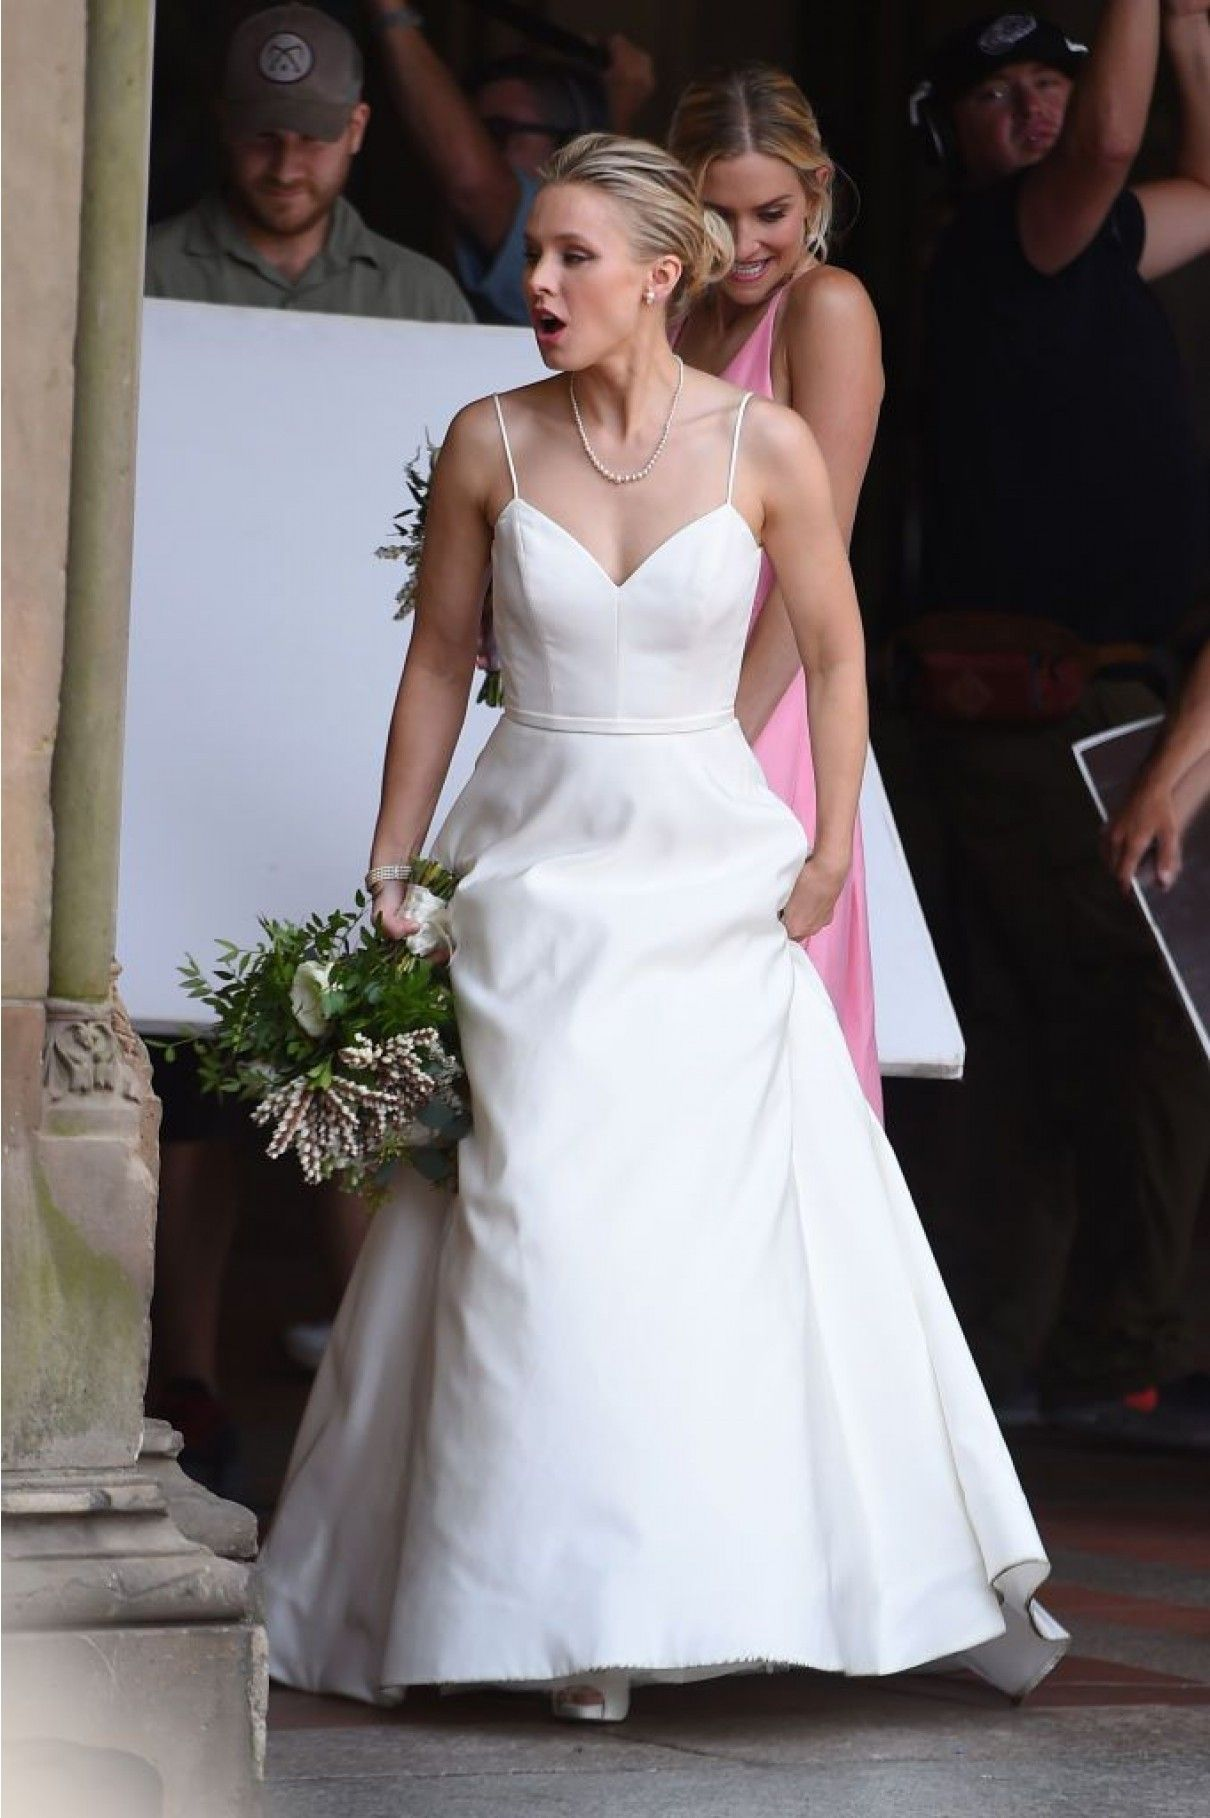 Pin By Danielle Mcphillips On Someday Movie Wedding Dresses Celebrity Wedding Dresses Wedding Movies